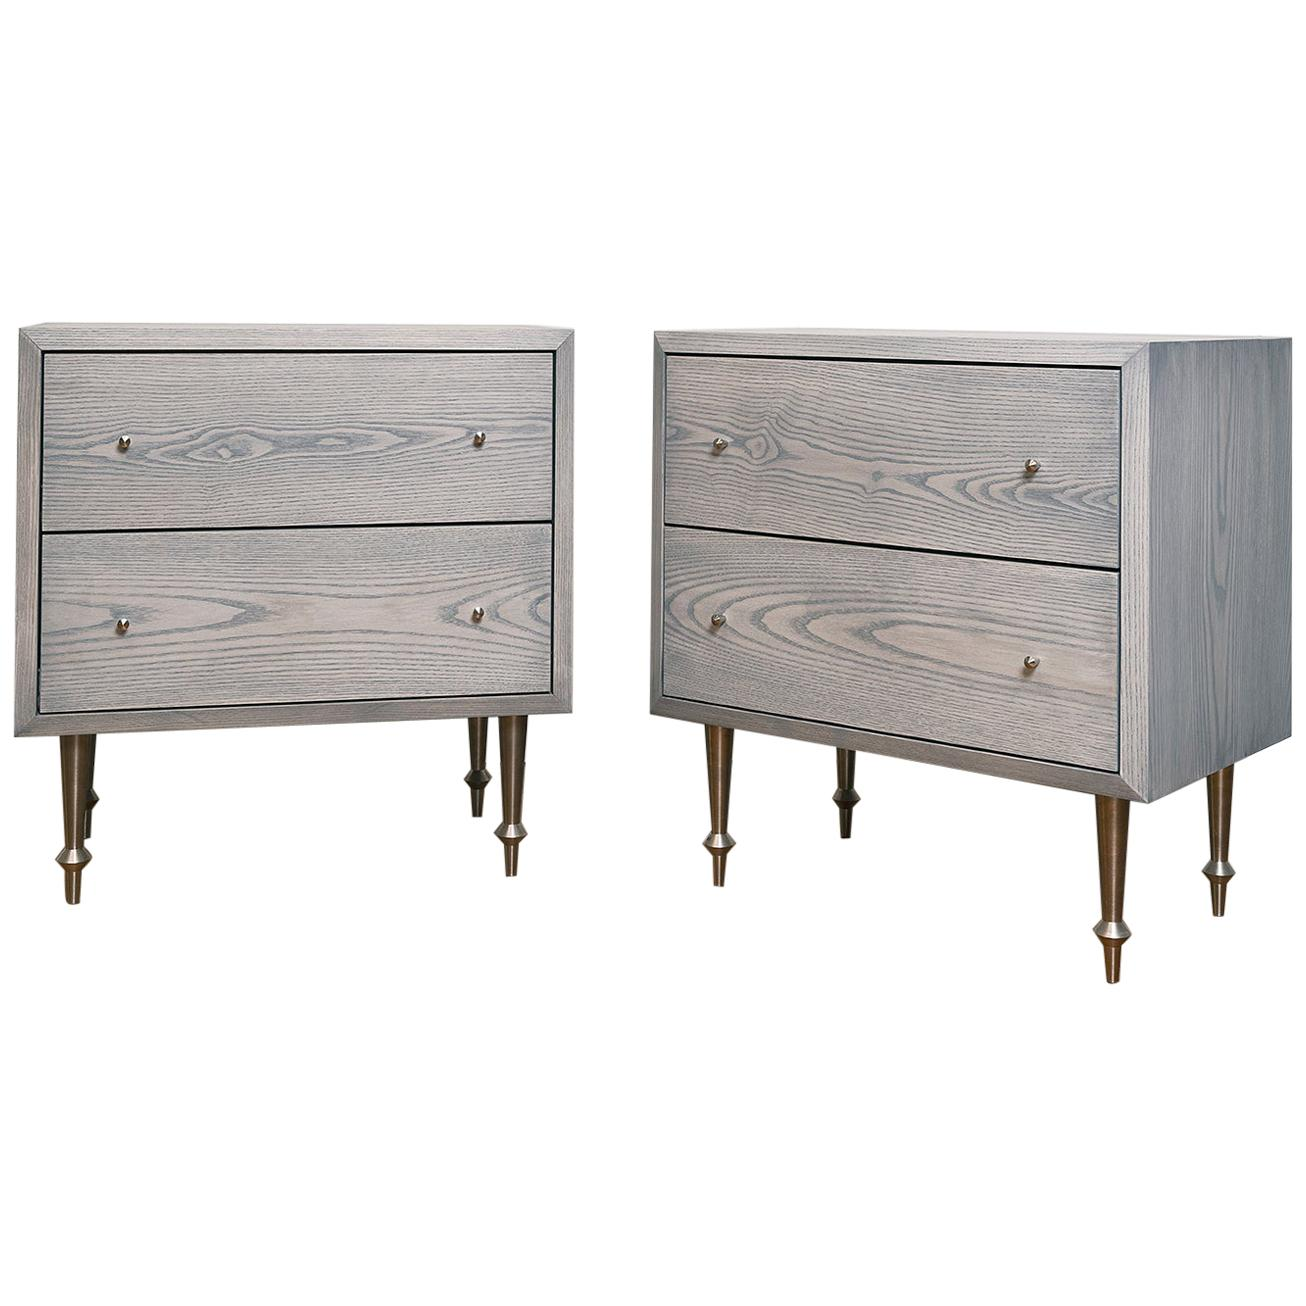 Pair of Pacific Side Tables with Greywash Finish by Volk